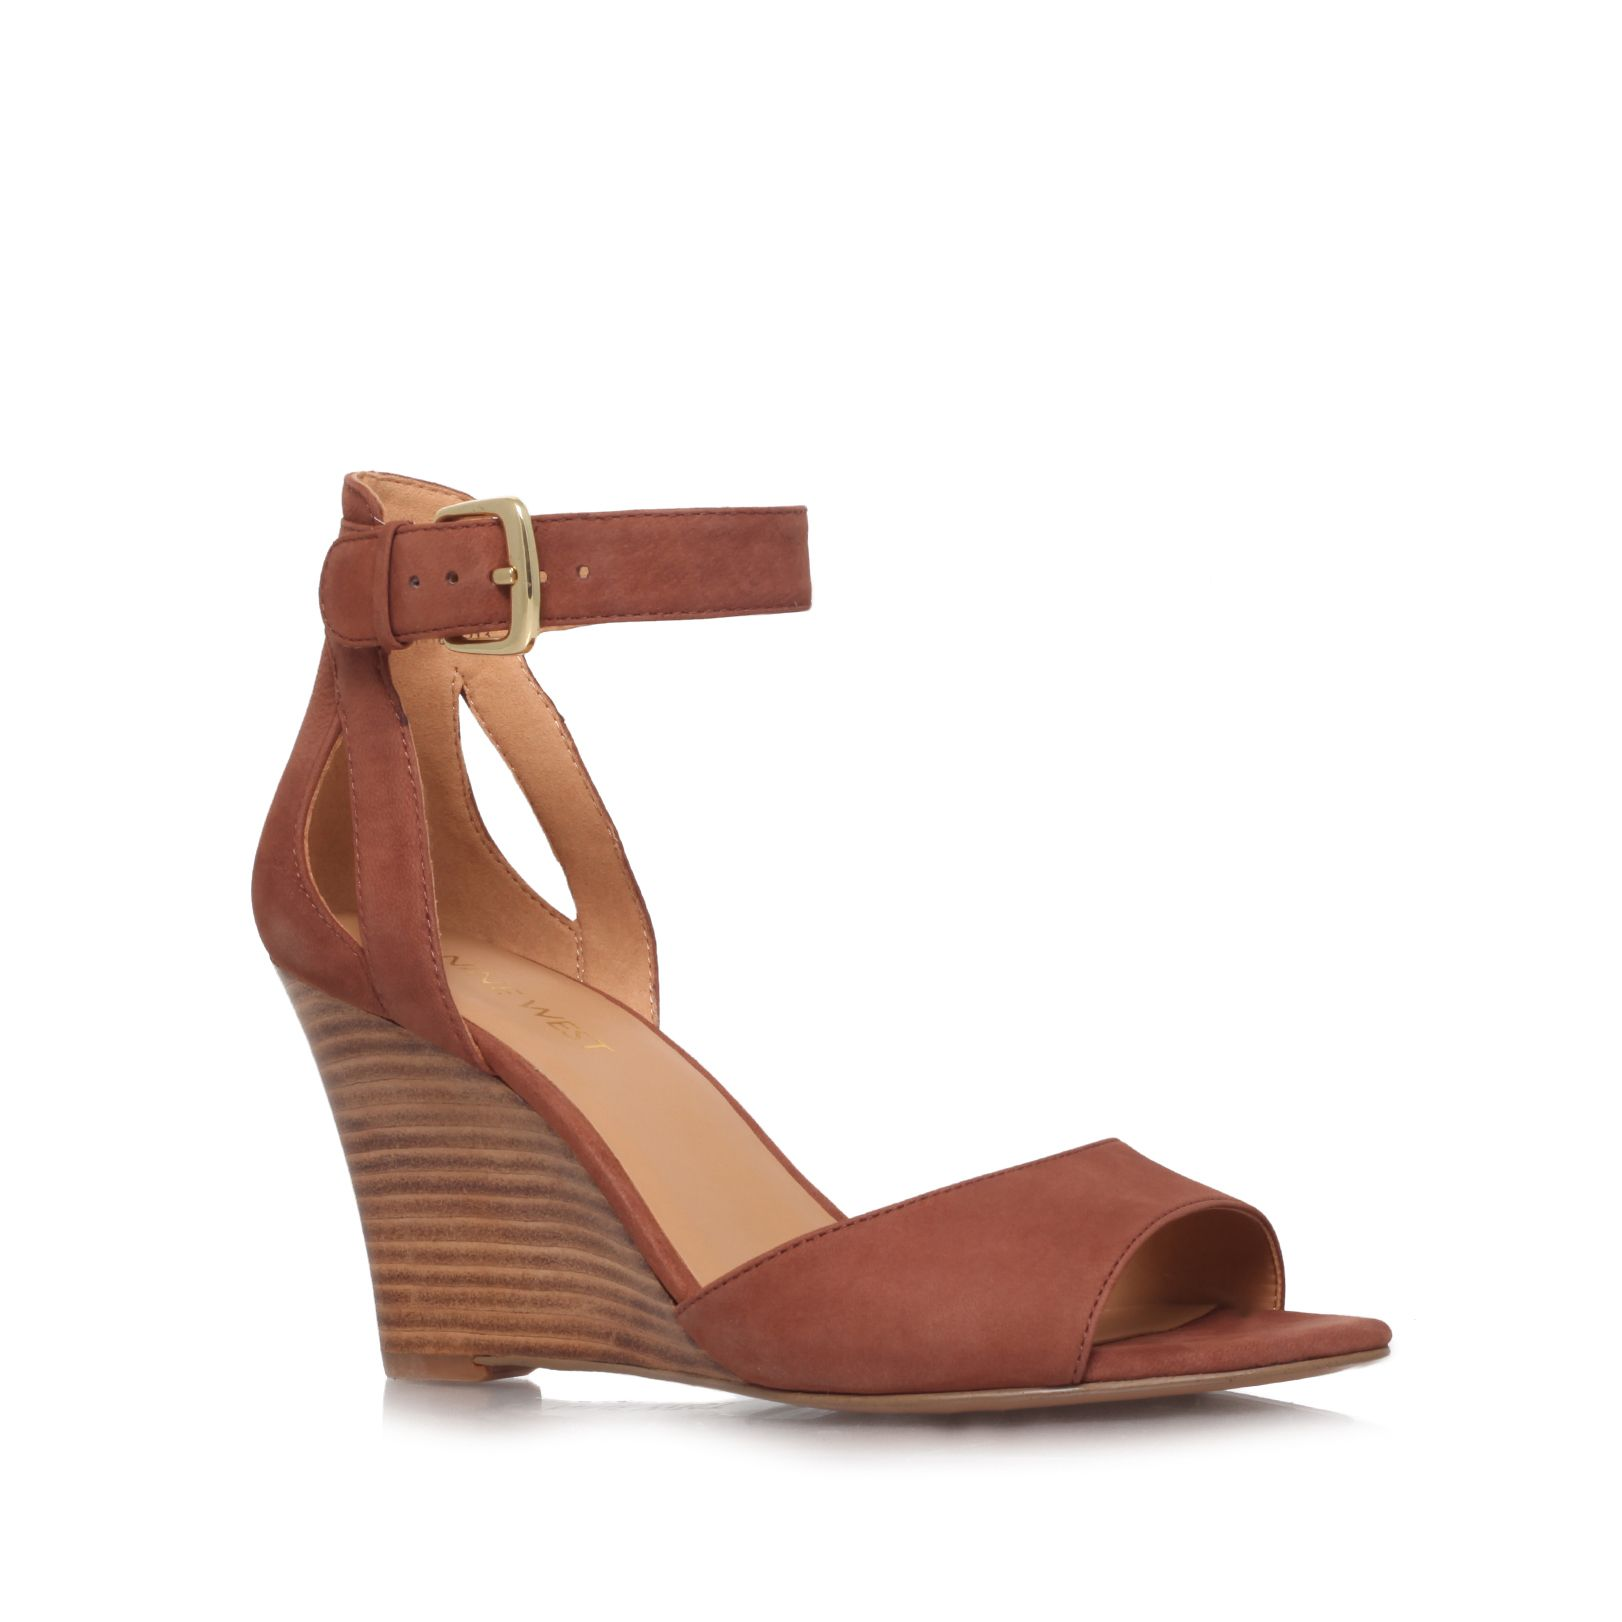 Floyd mid heel wedge sandals